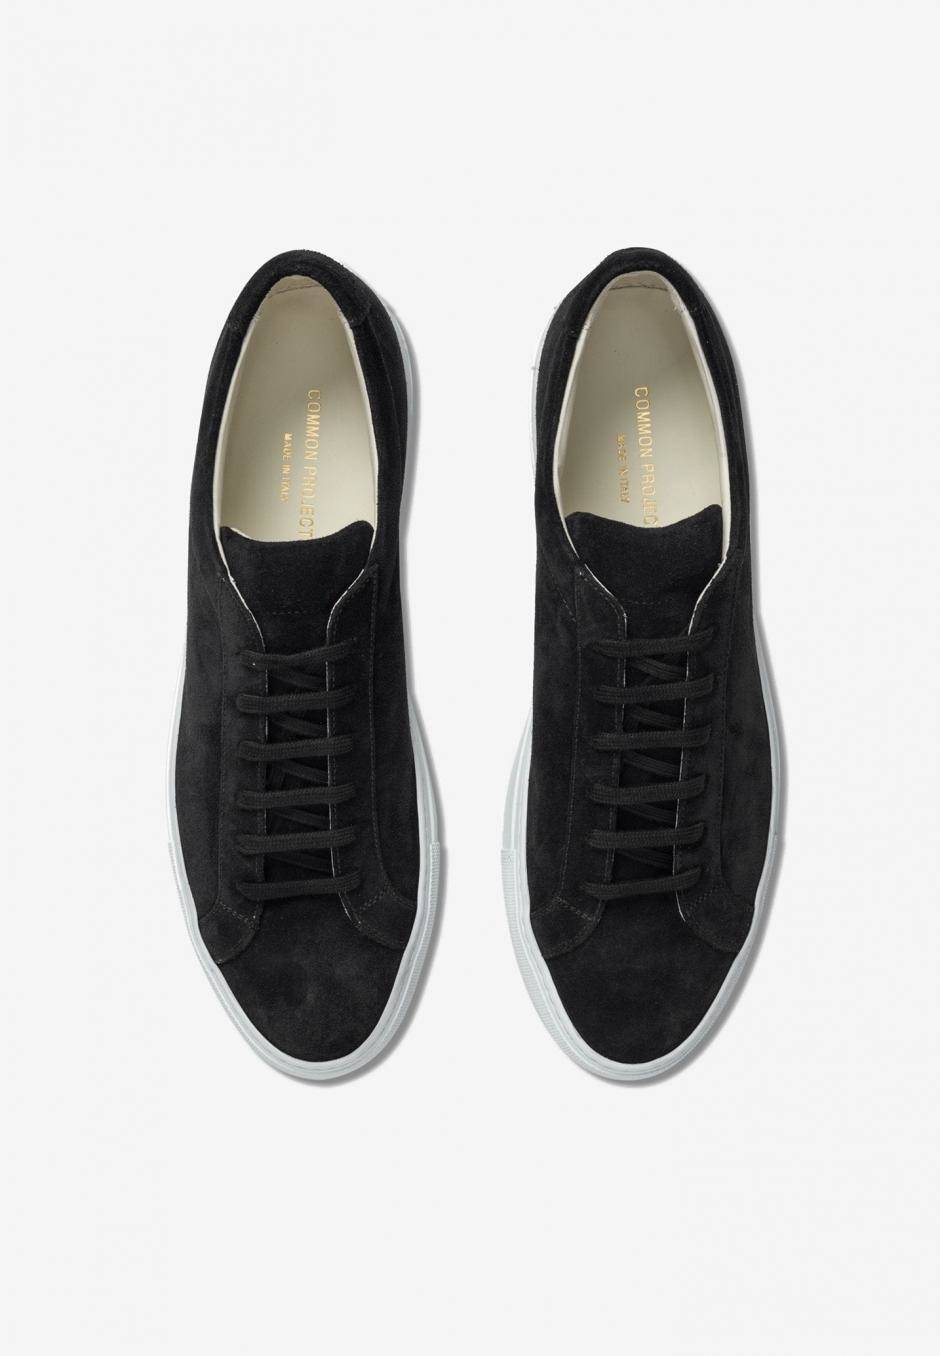 Common Projects Original Achilles Suede Black